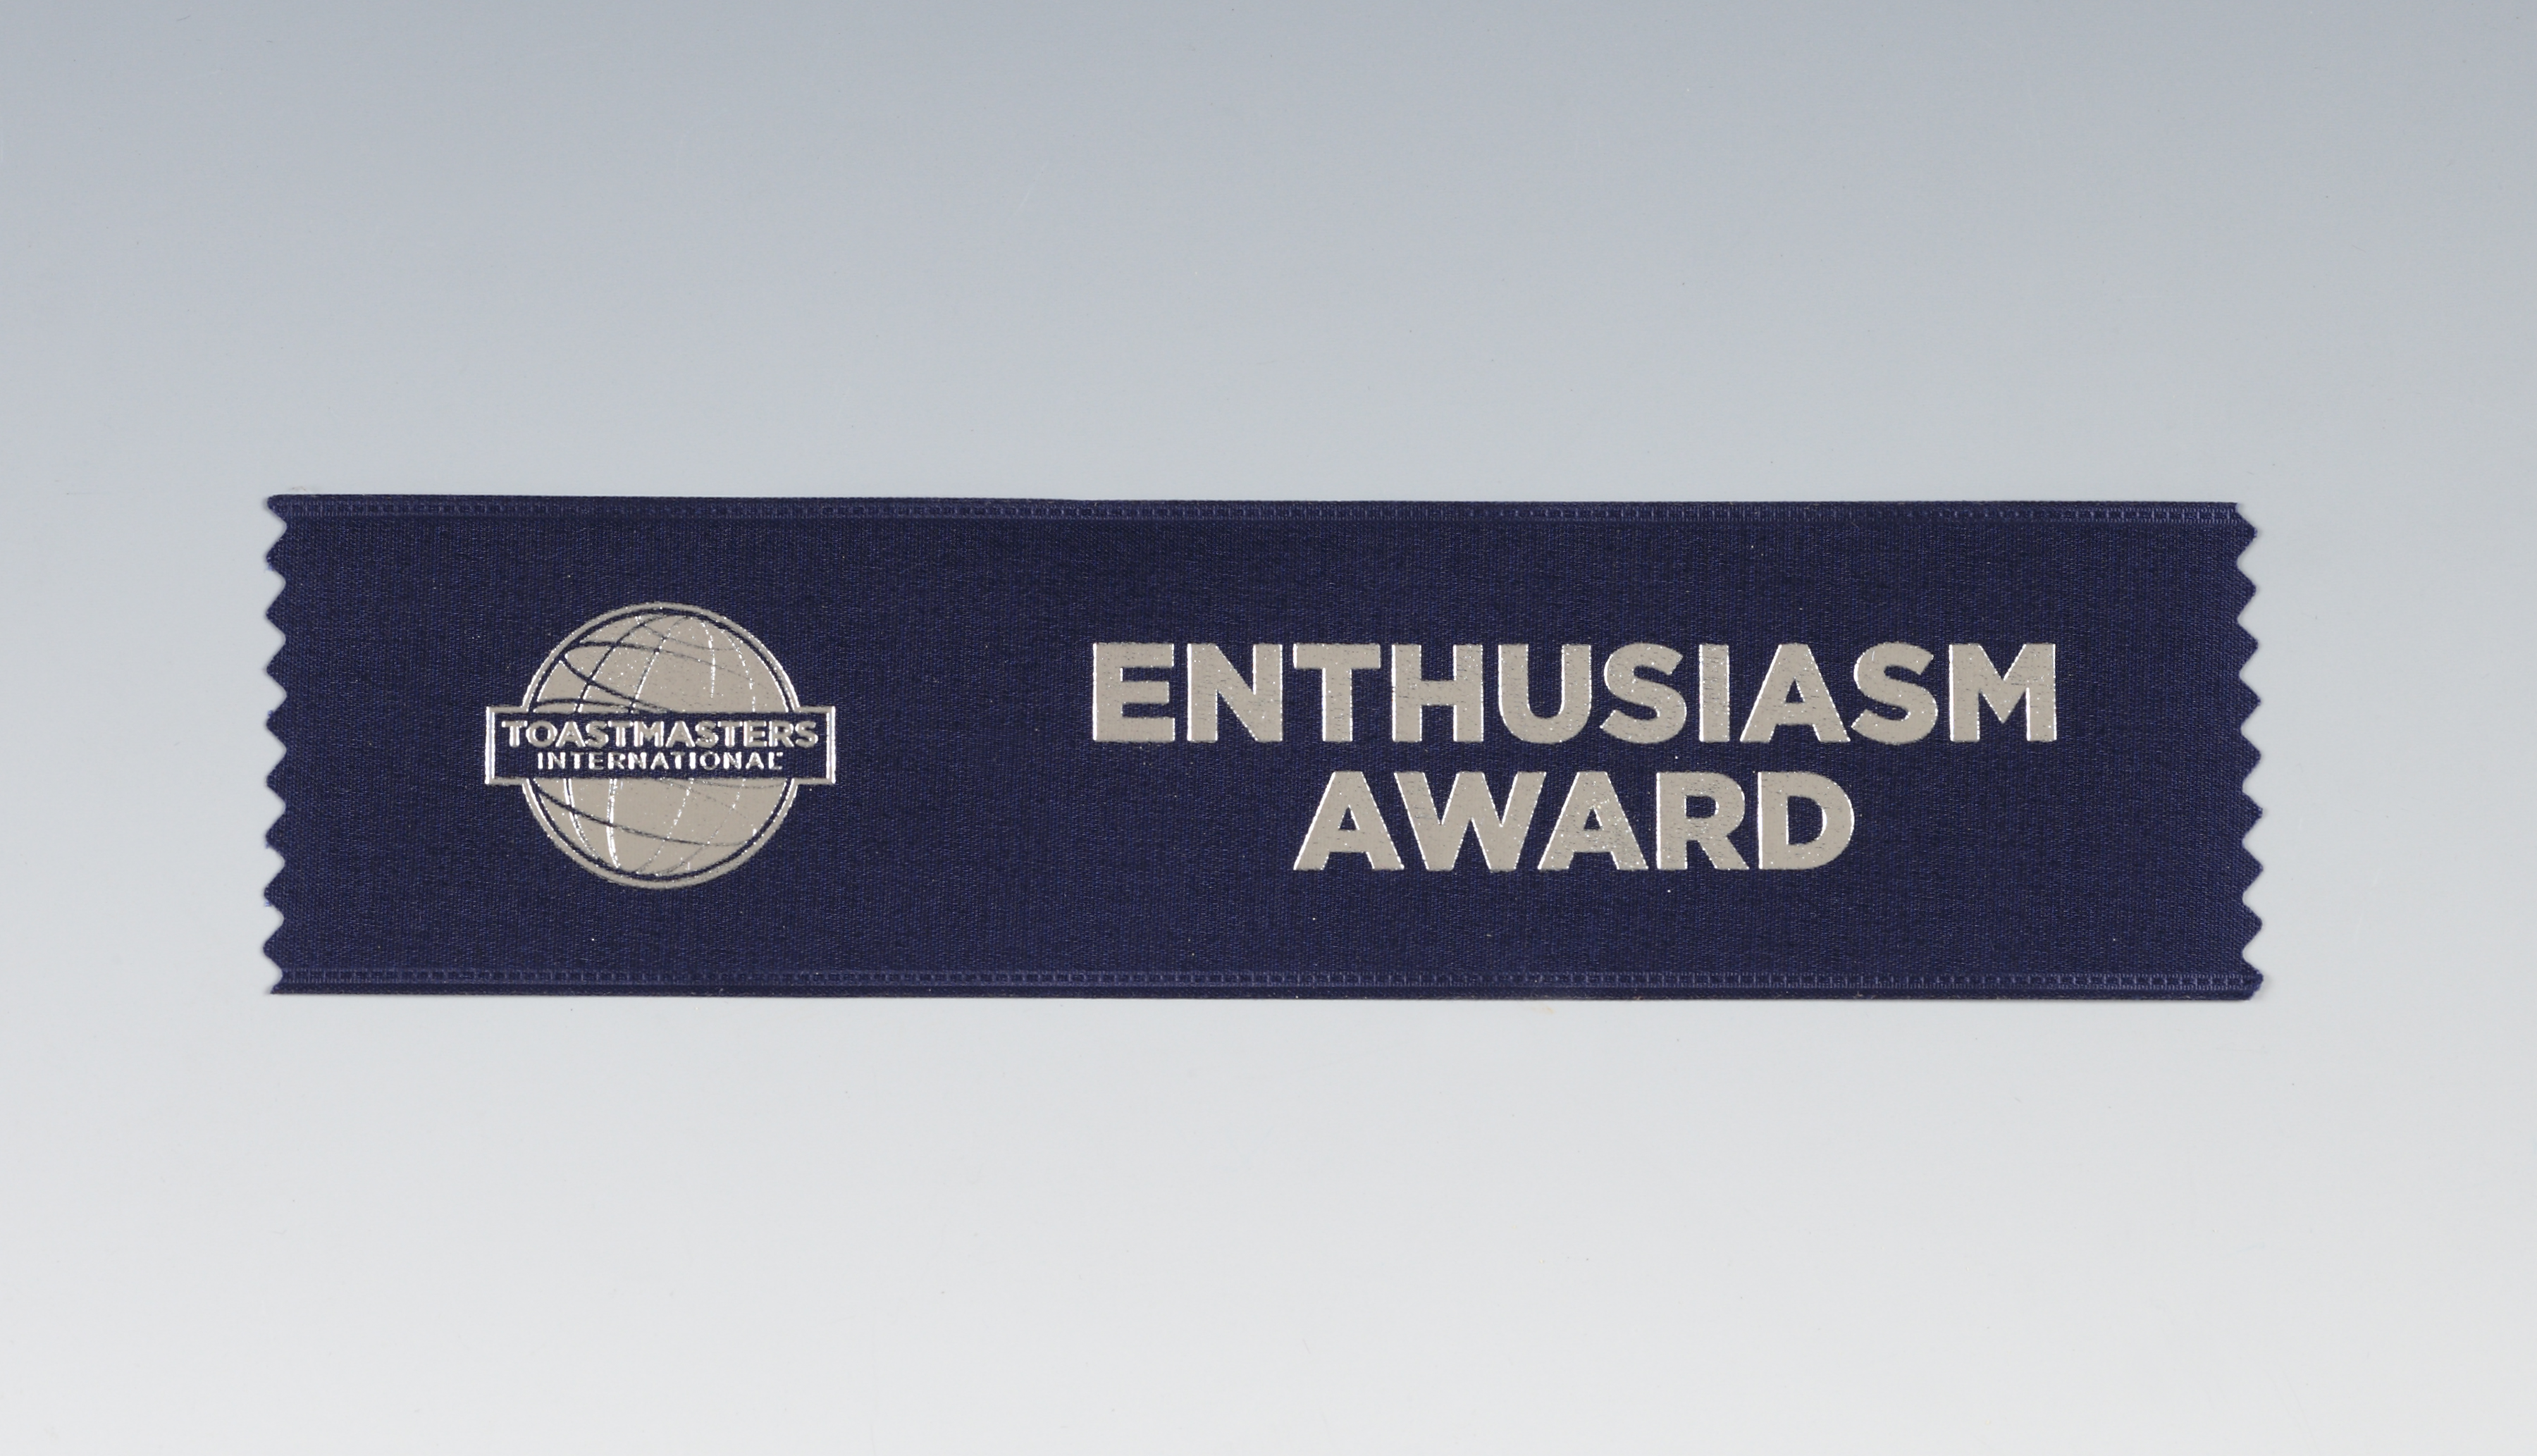 Enthusiasm Award Ribbon